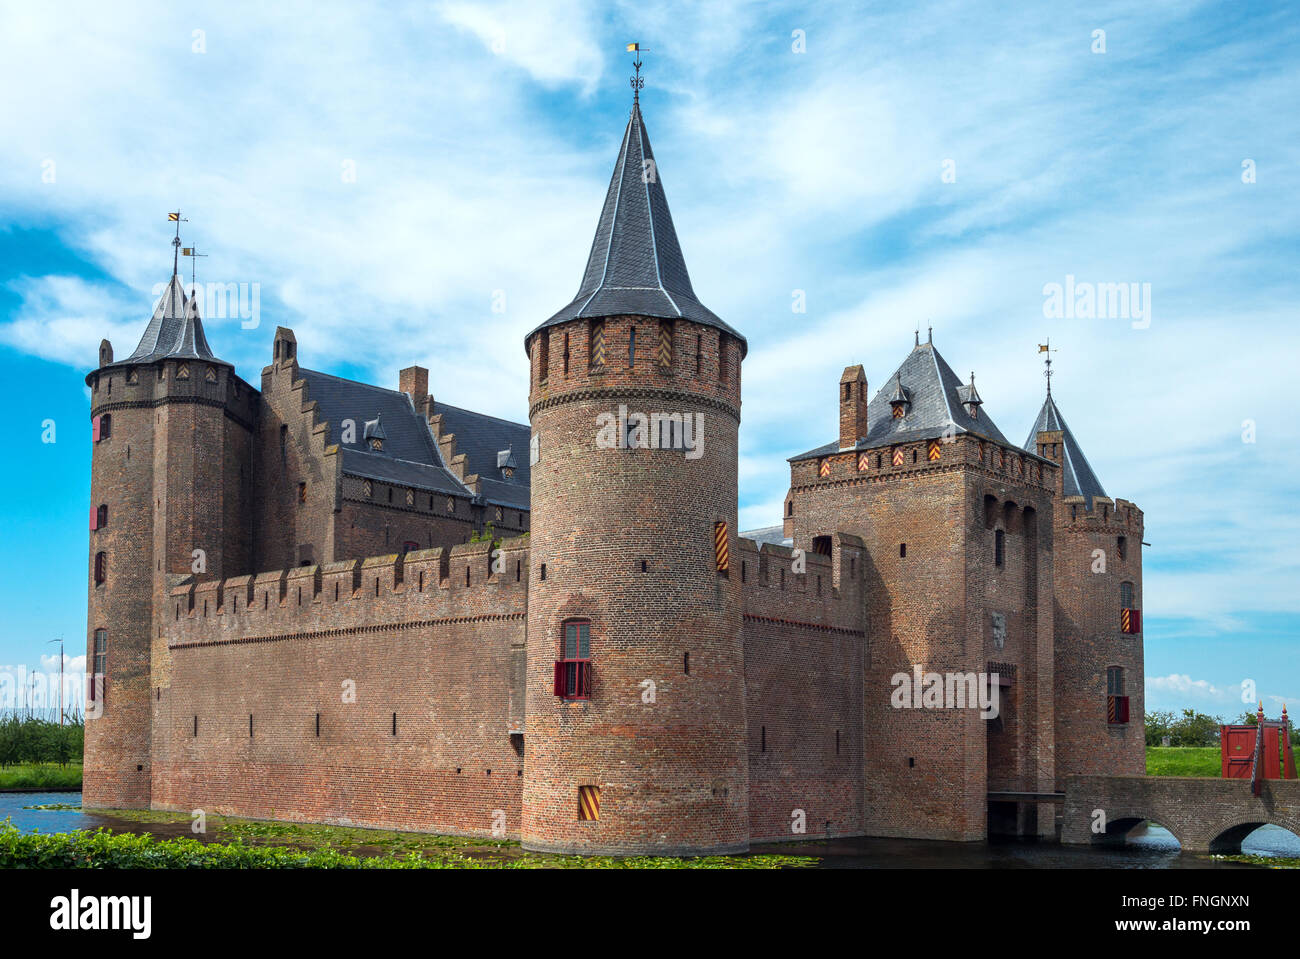 Amsterdam, Waterland district, Muiden, the Amsterdam castle Stock Photo